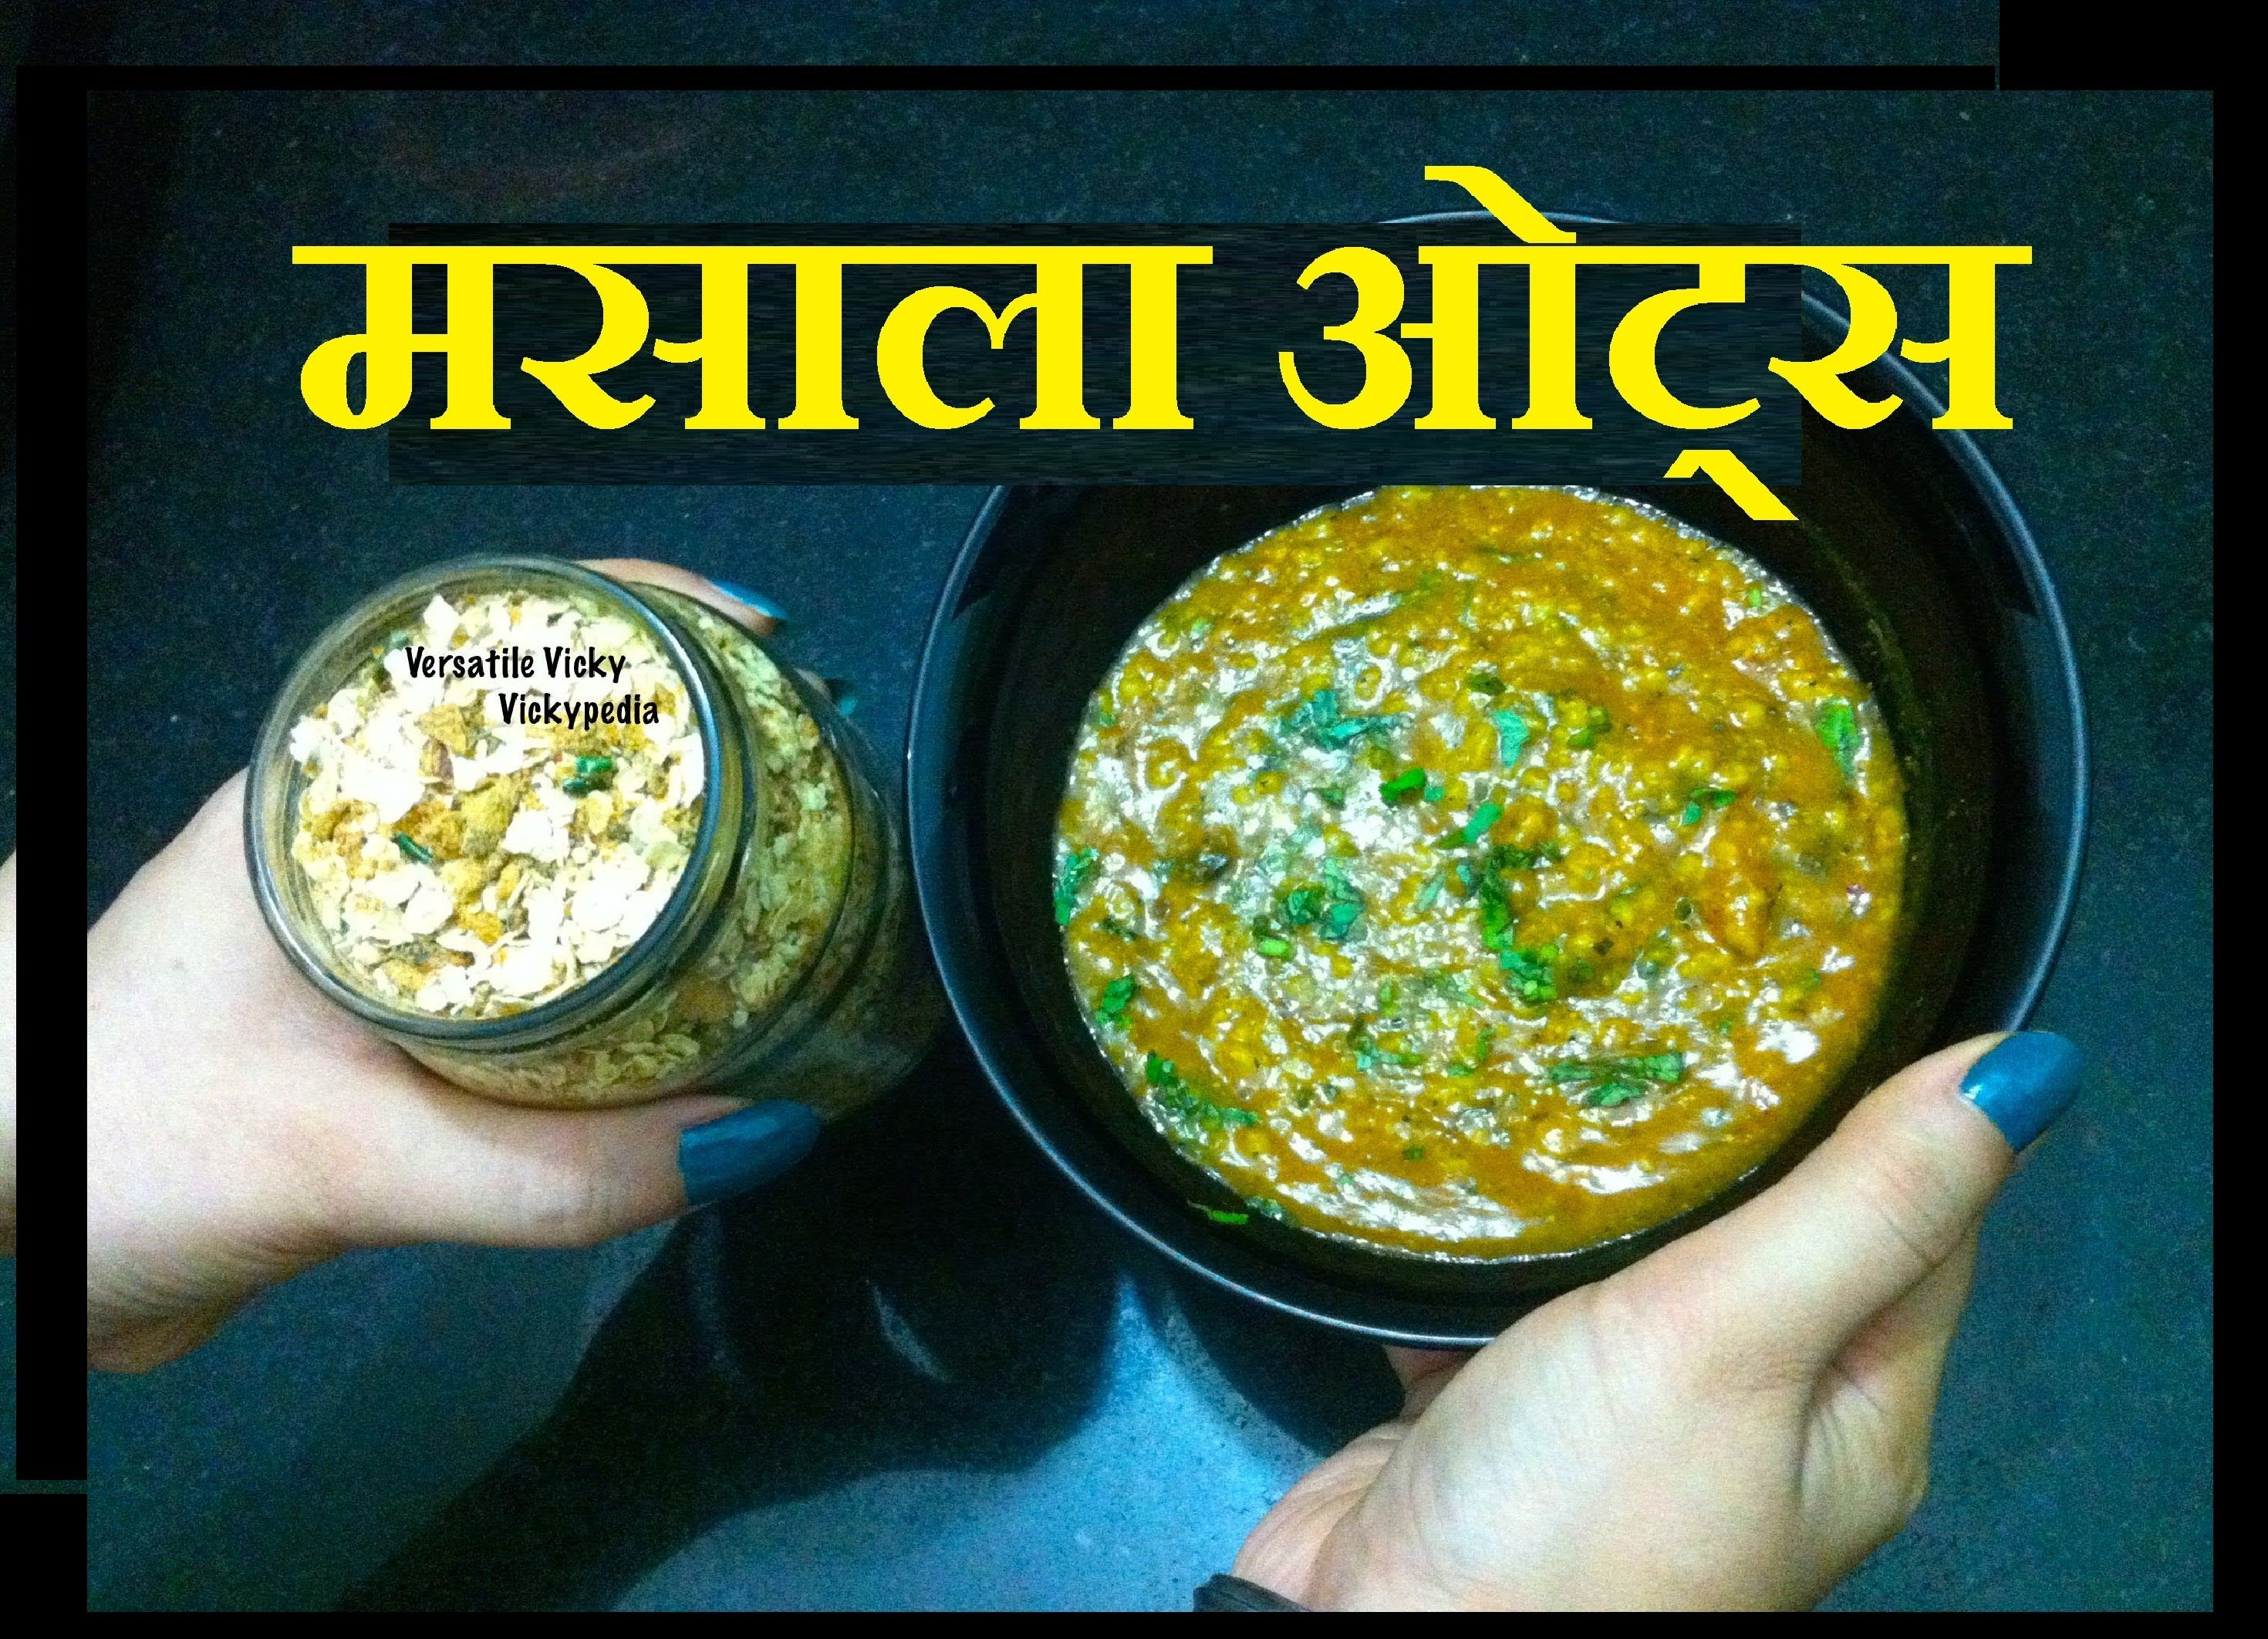 The 25 best masala oats recipe in hindi ideas on pinterest fat the 25 best masala oats recipe in hindi ideas on pinterest fat burning drinks flat tummy drink and stomach fat burning foods forumfinder Images